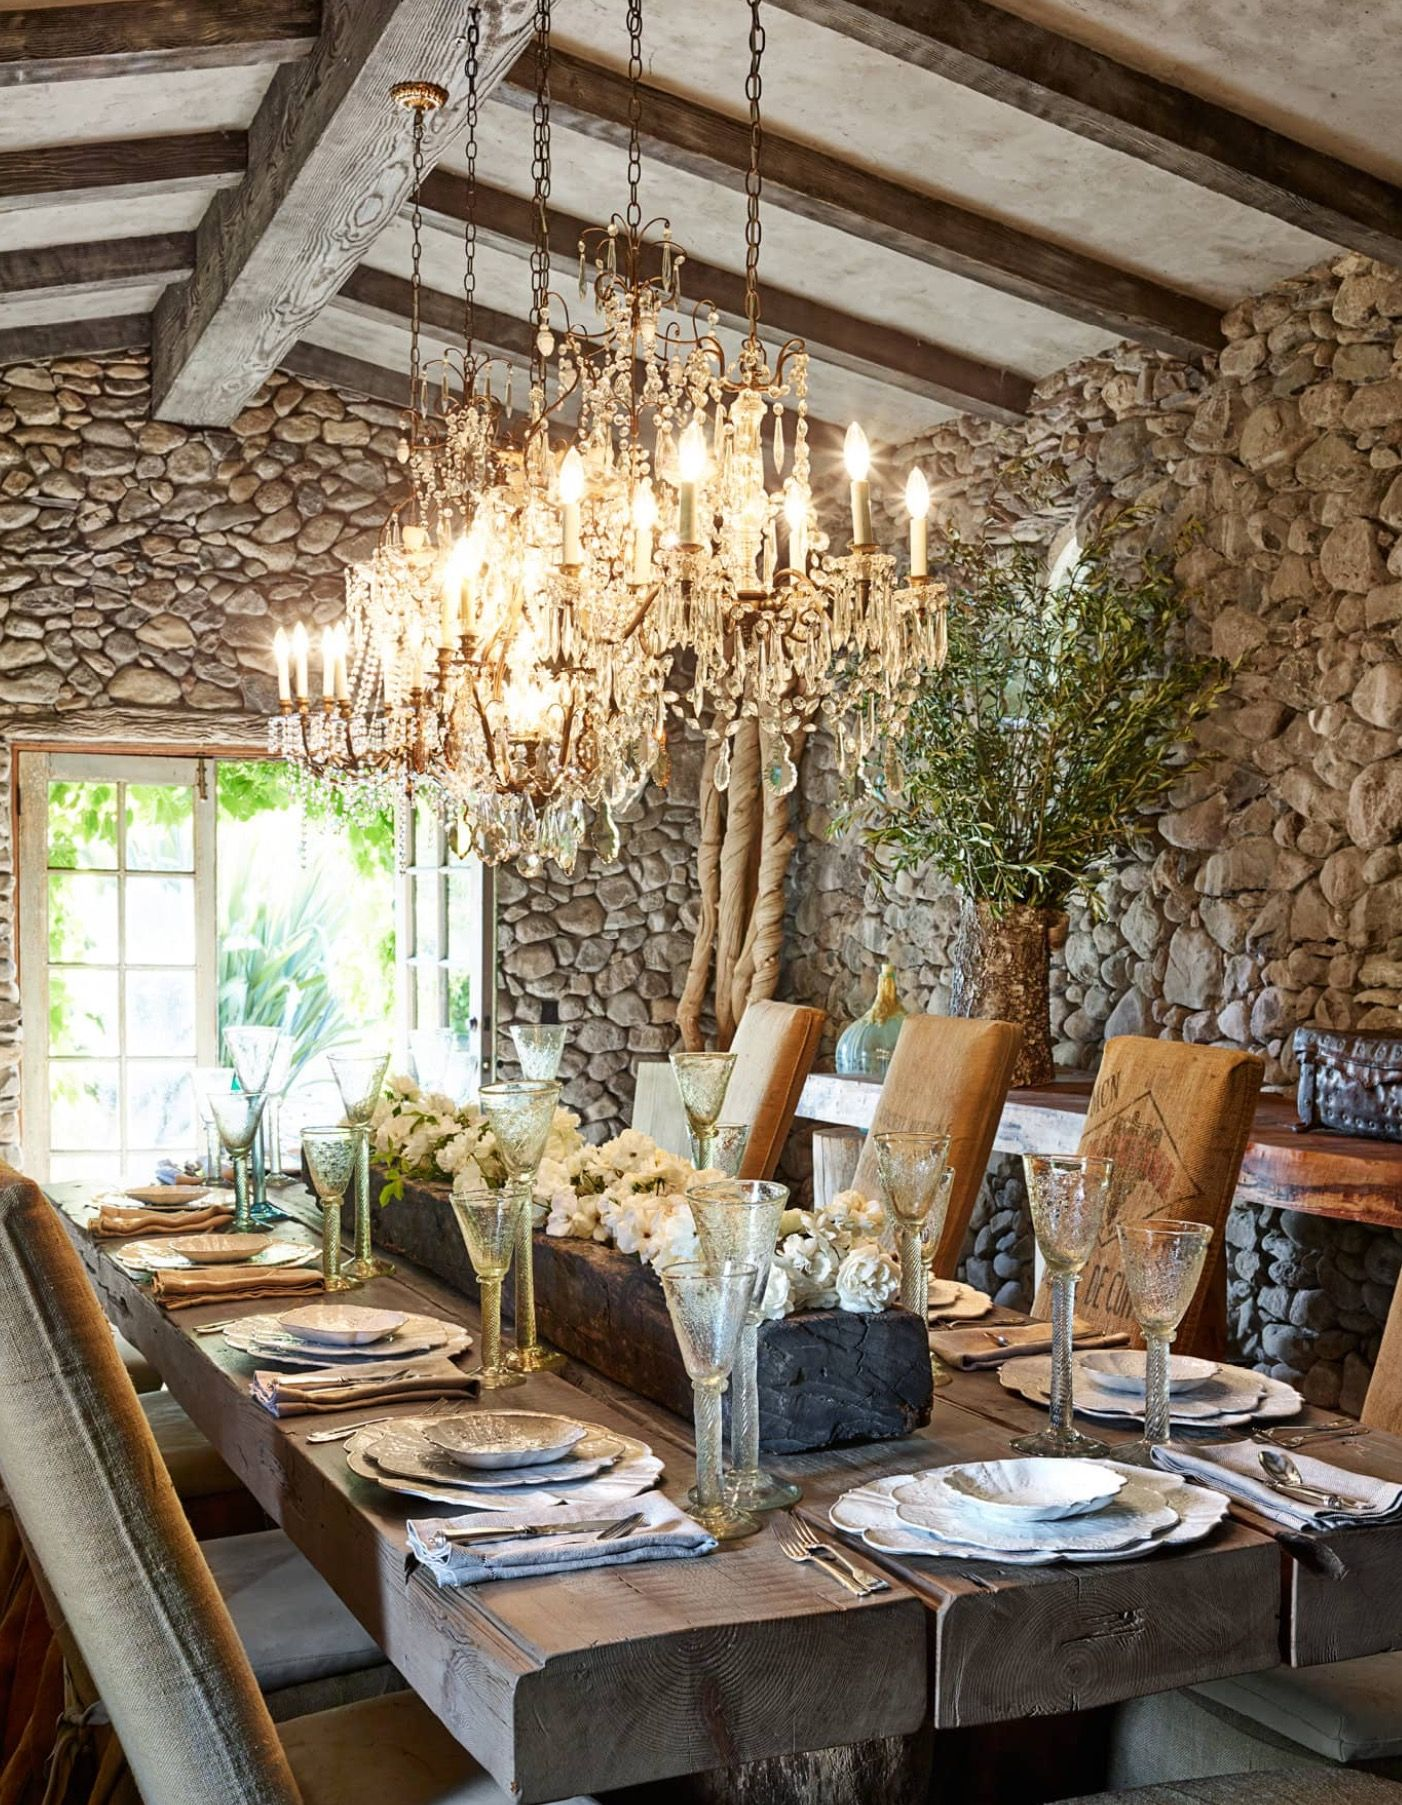 Stone Walls Rustic Farmhouse Table French